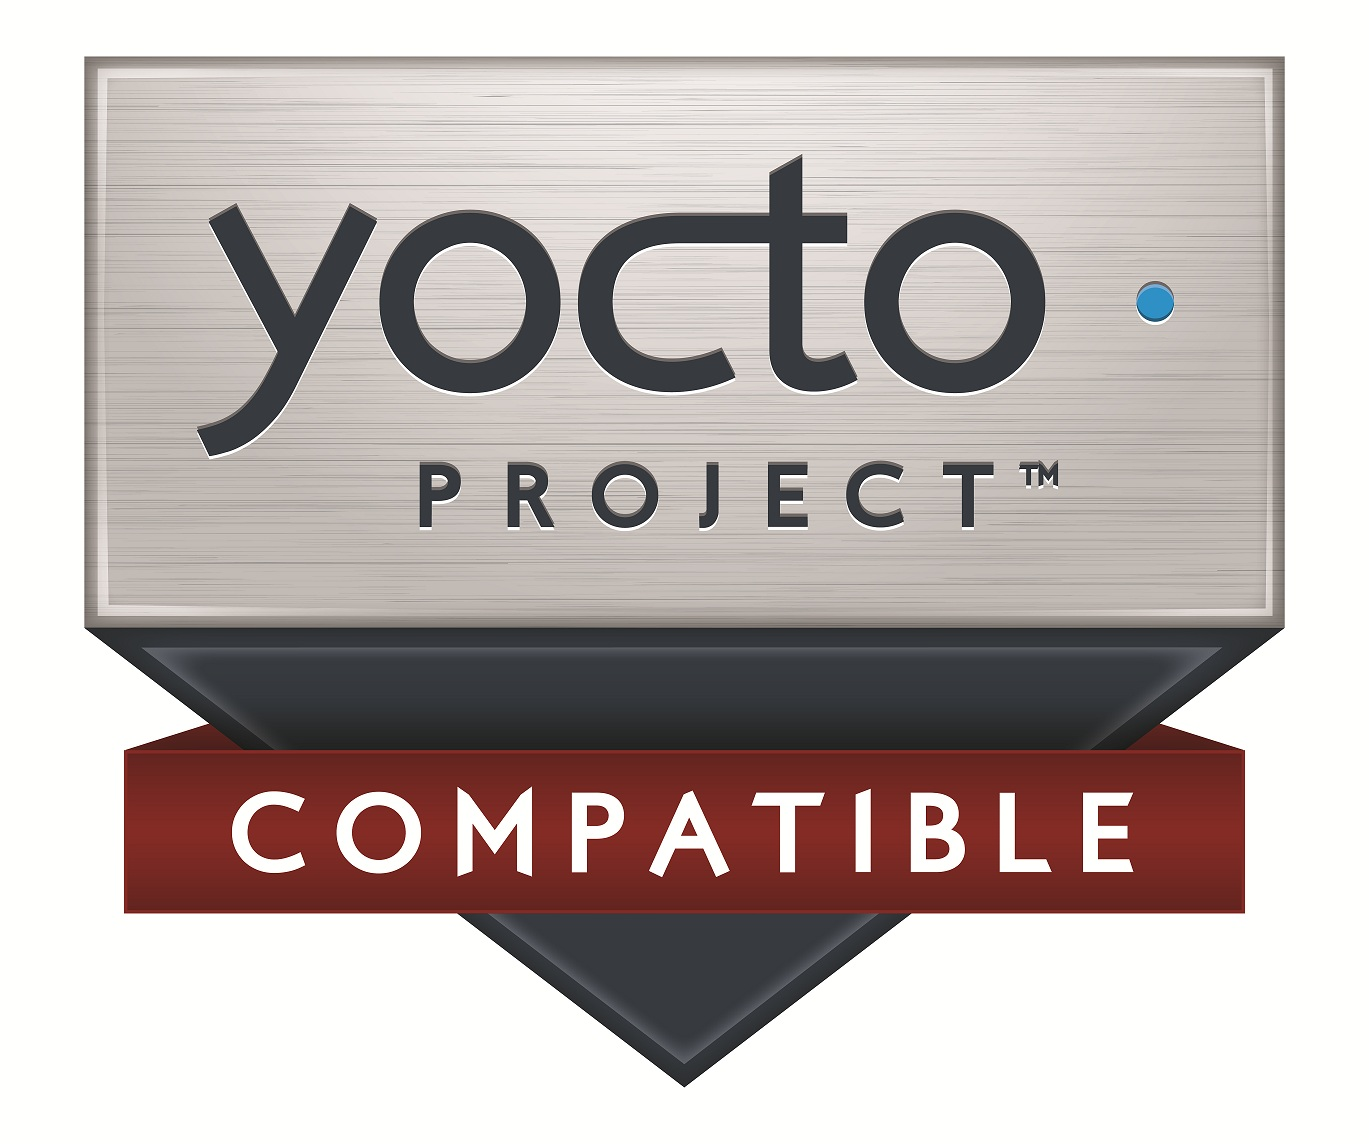 Image:Yocto-Compatible-Badge.jpeg